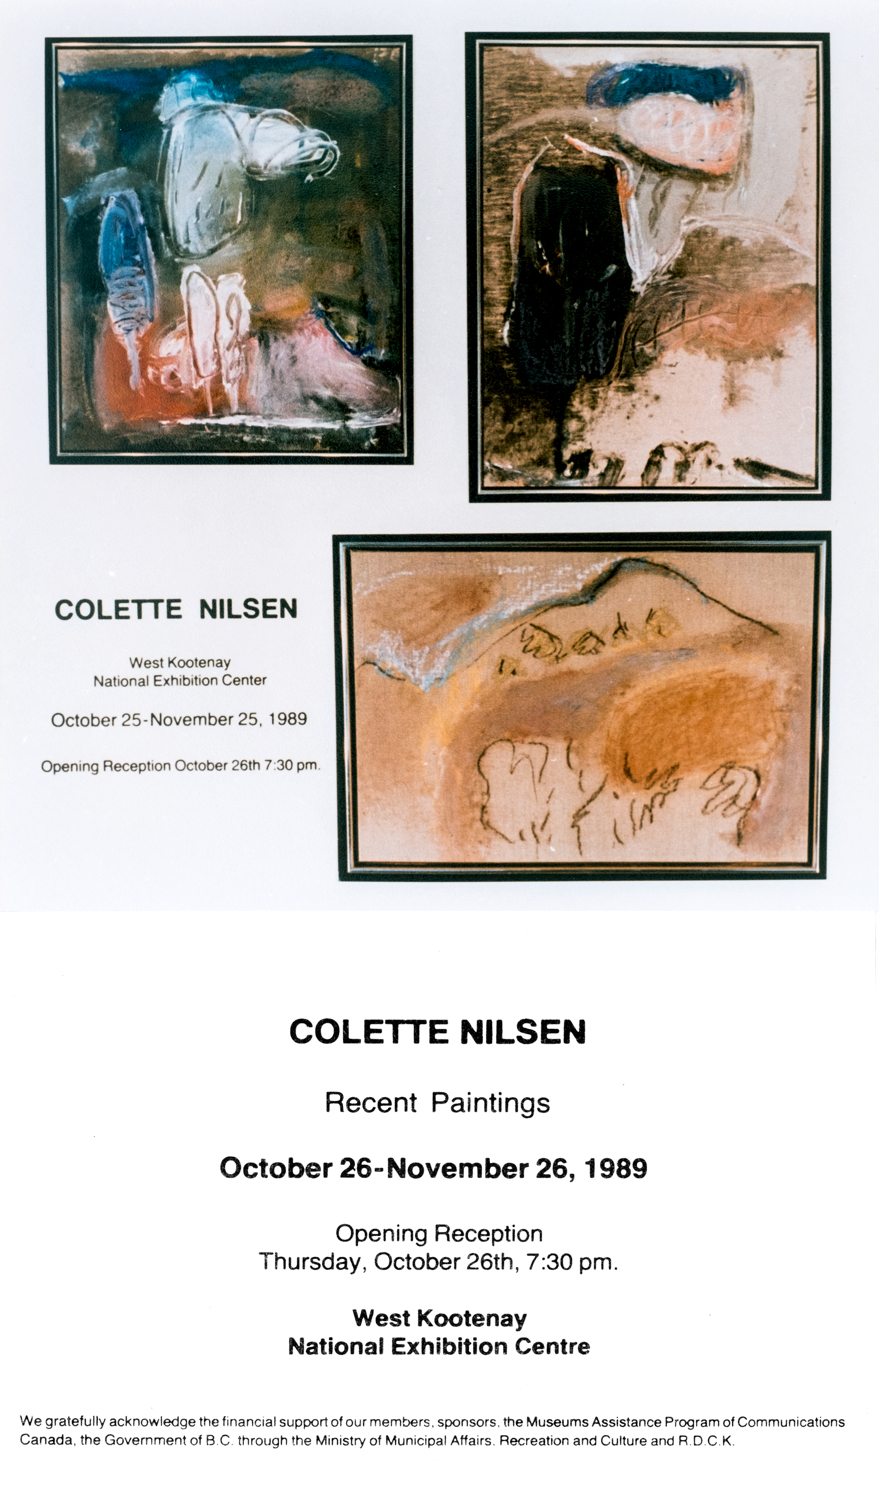 1989 West Kootenay exhibition